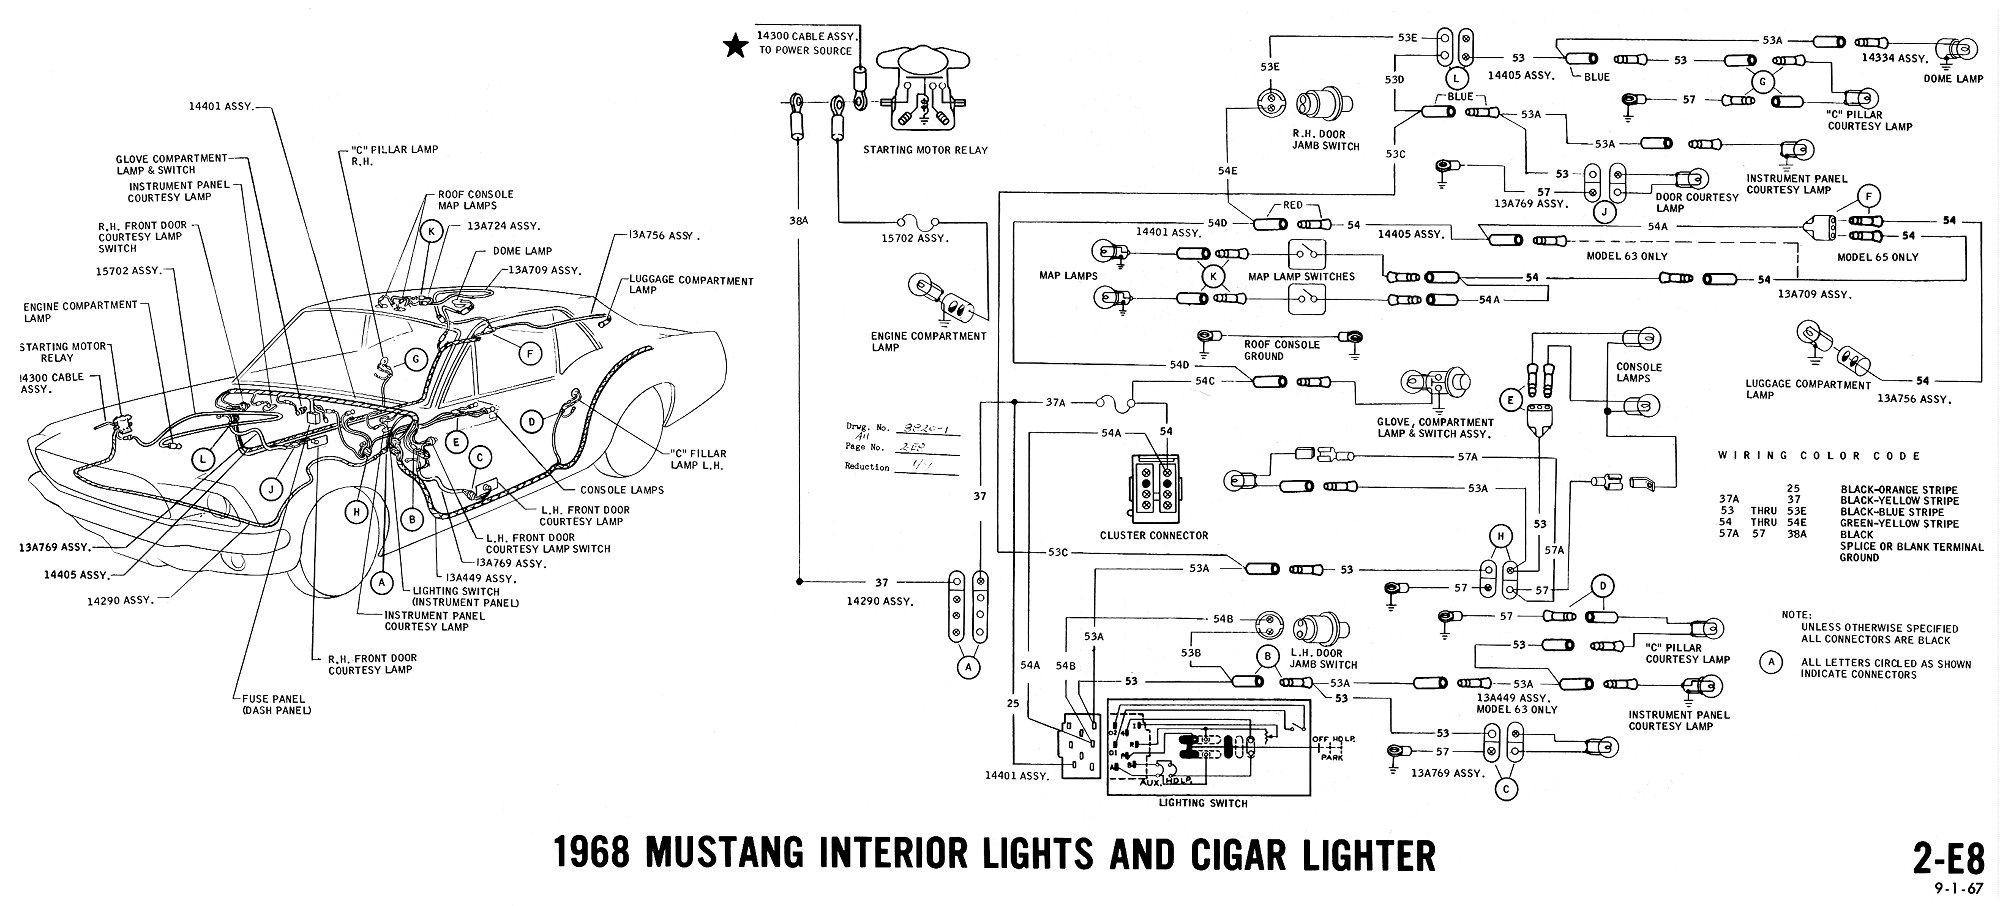 Isterment Cluster Wiring Diagram 1993 Ford Mustang Fuse Box On 68 Turn Signal Pictures Radio